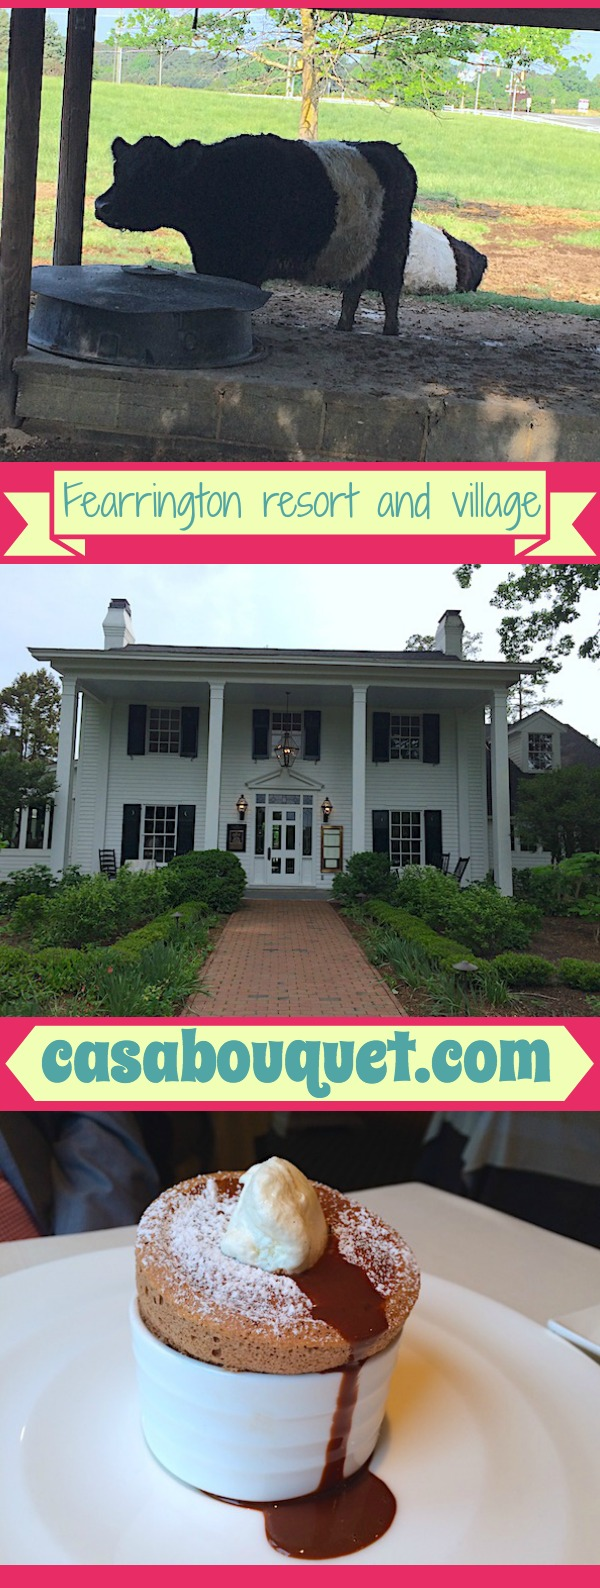 Fearrington resort and village in North Carolina's Piedmont has Relais & Chateaux inn and restaurant. A luxury resort in a country farm setting.